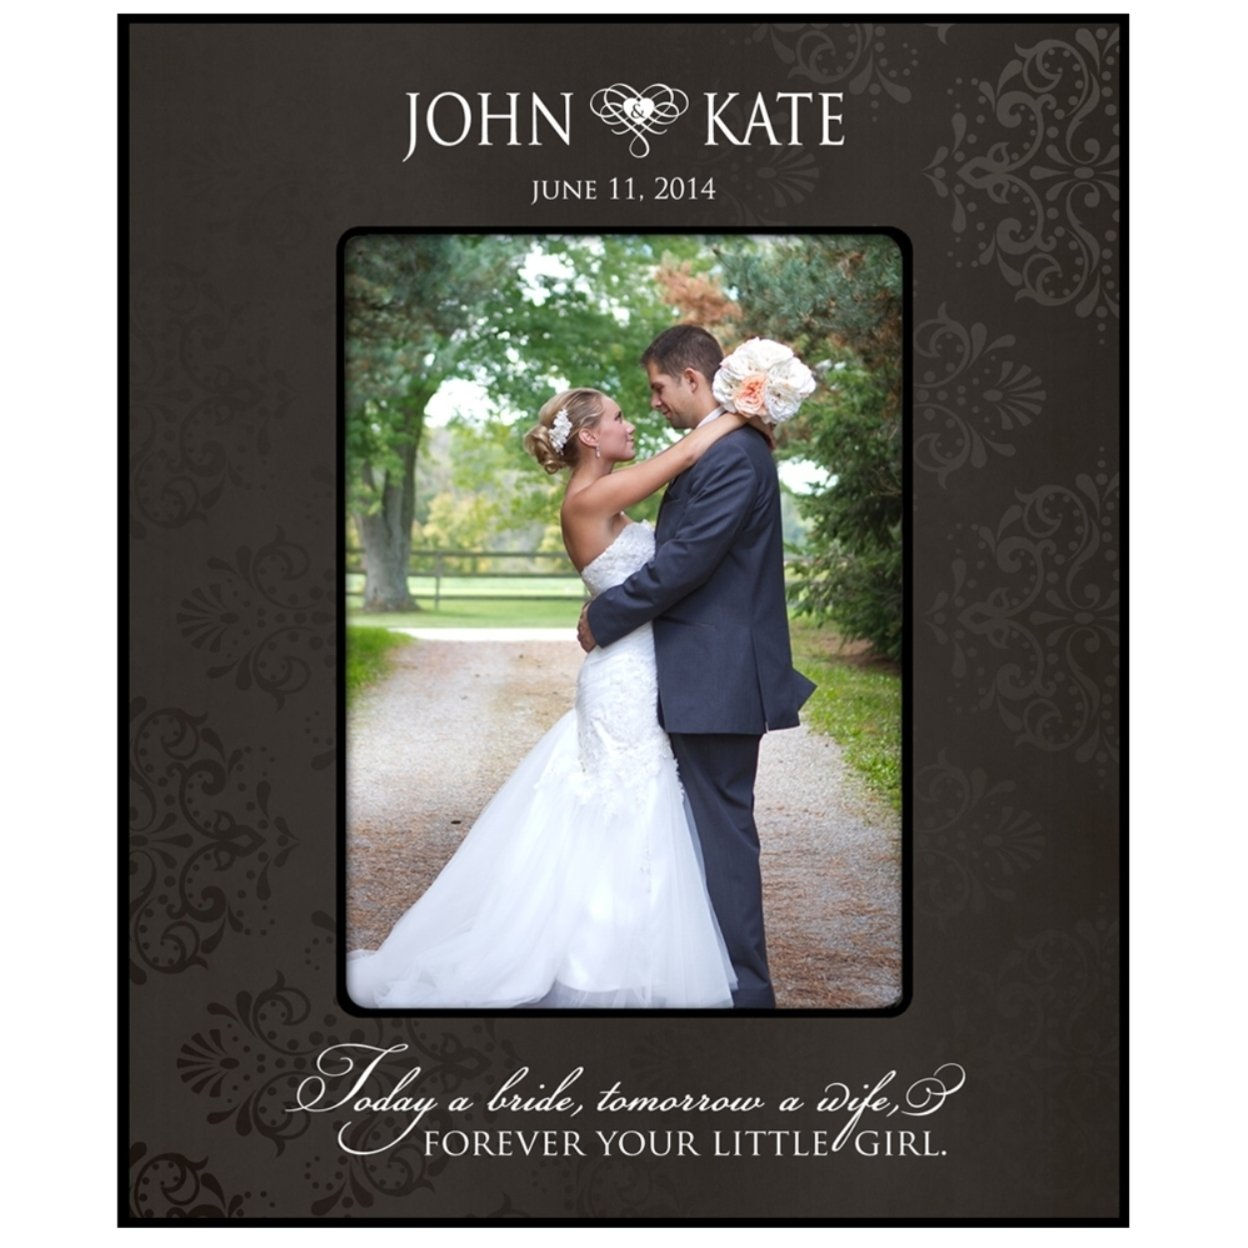 Personalized Wedding Photo Frame for parent to say thanks 55c8d90ea2771cdc368b45de